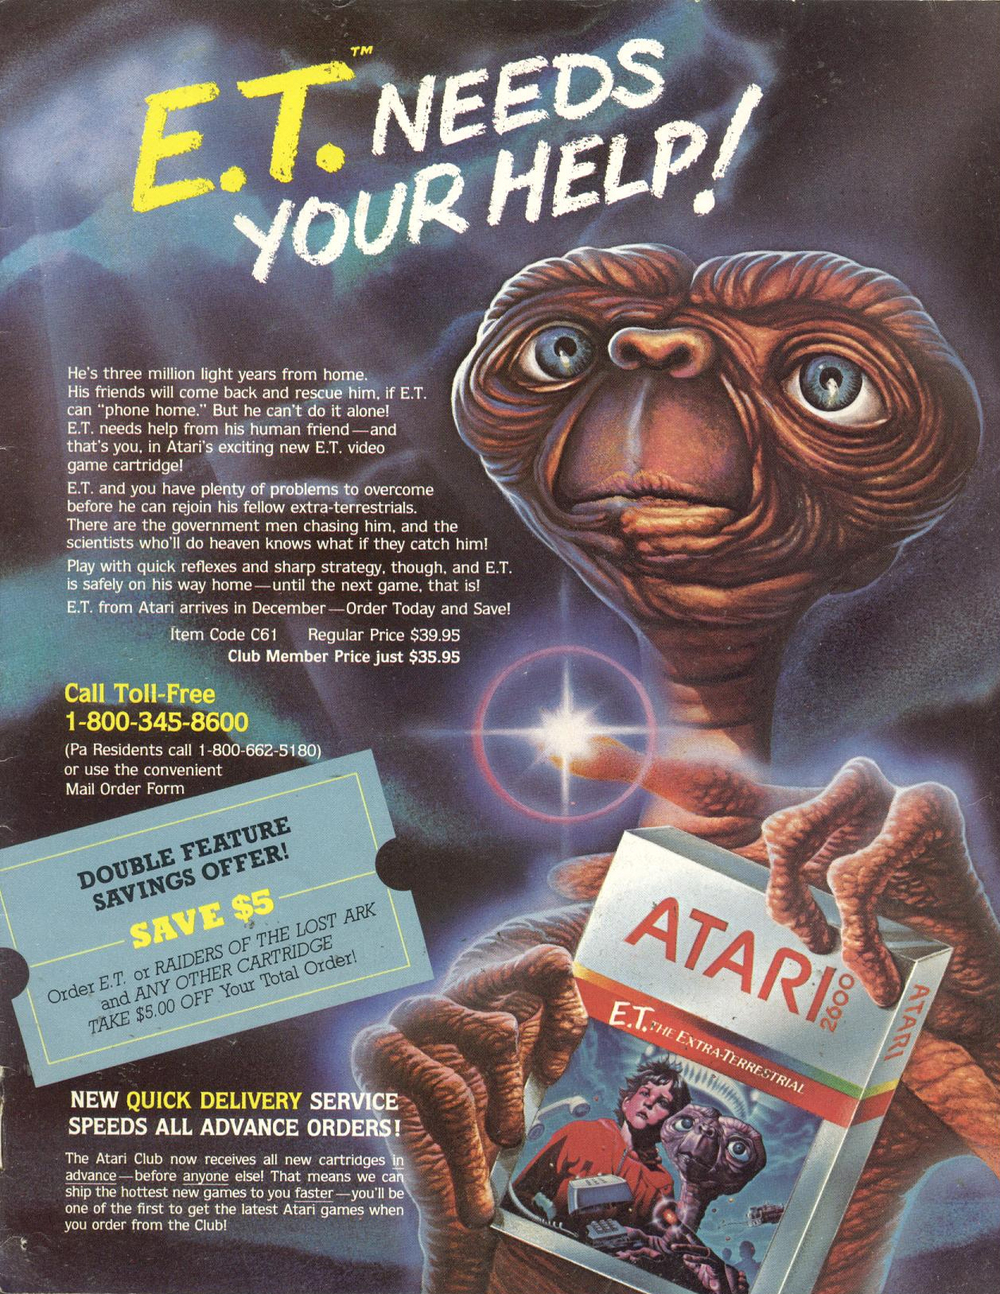 xbox-producing-doc-on-atari-and-et-video-game.jpg